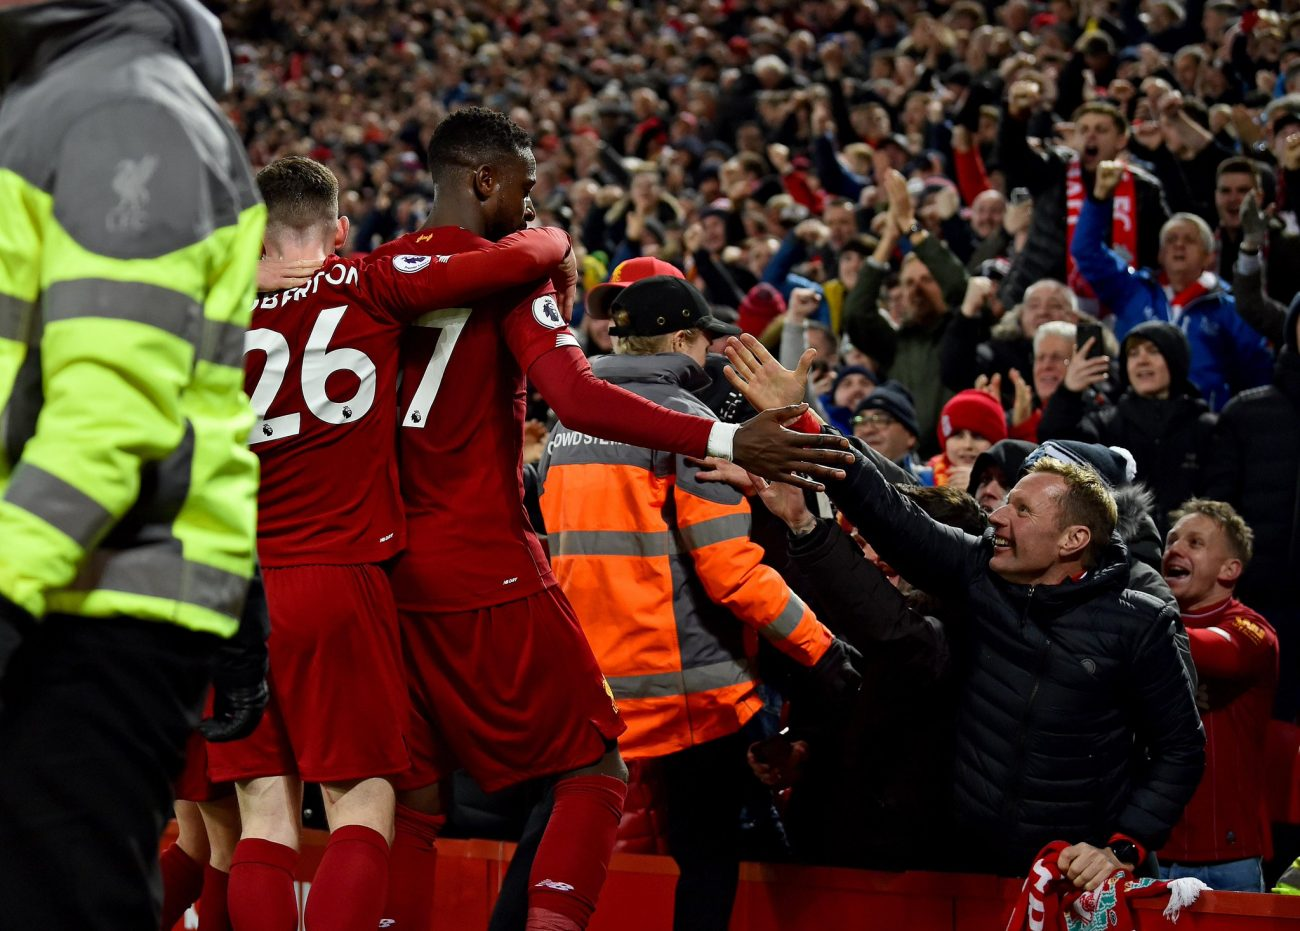 The best photos from Anfield as Liverpool earn Merseyside derby bragging rights